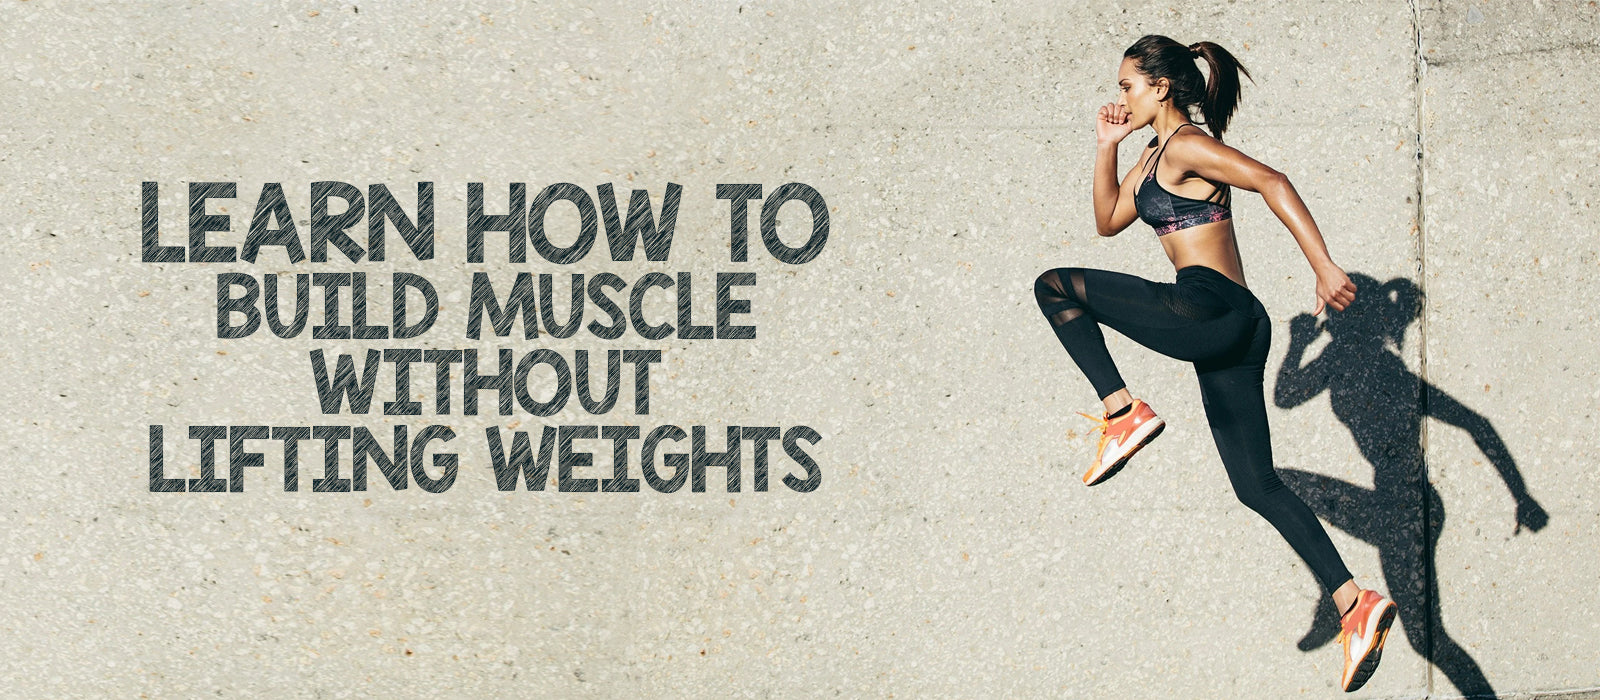 Learn How To Build Muscle Without Lifting Weights